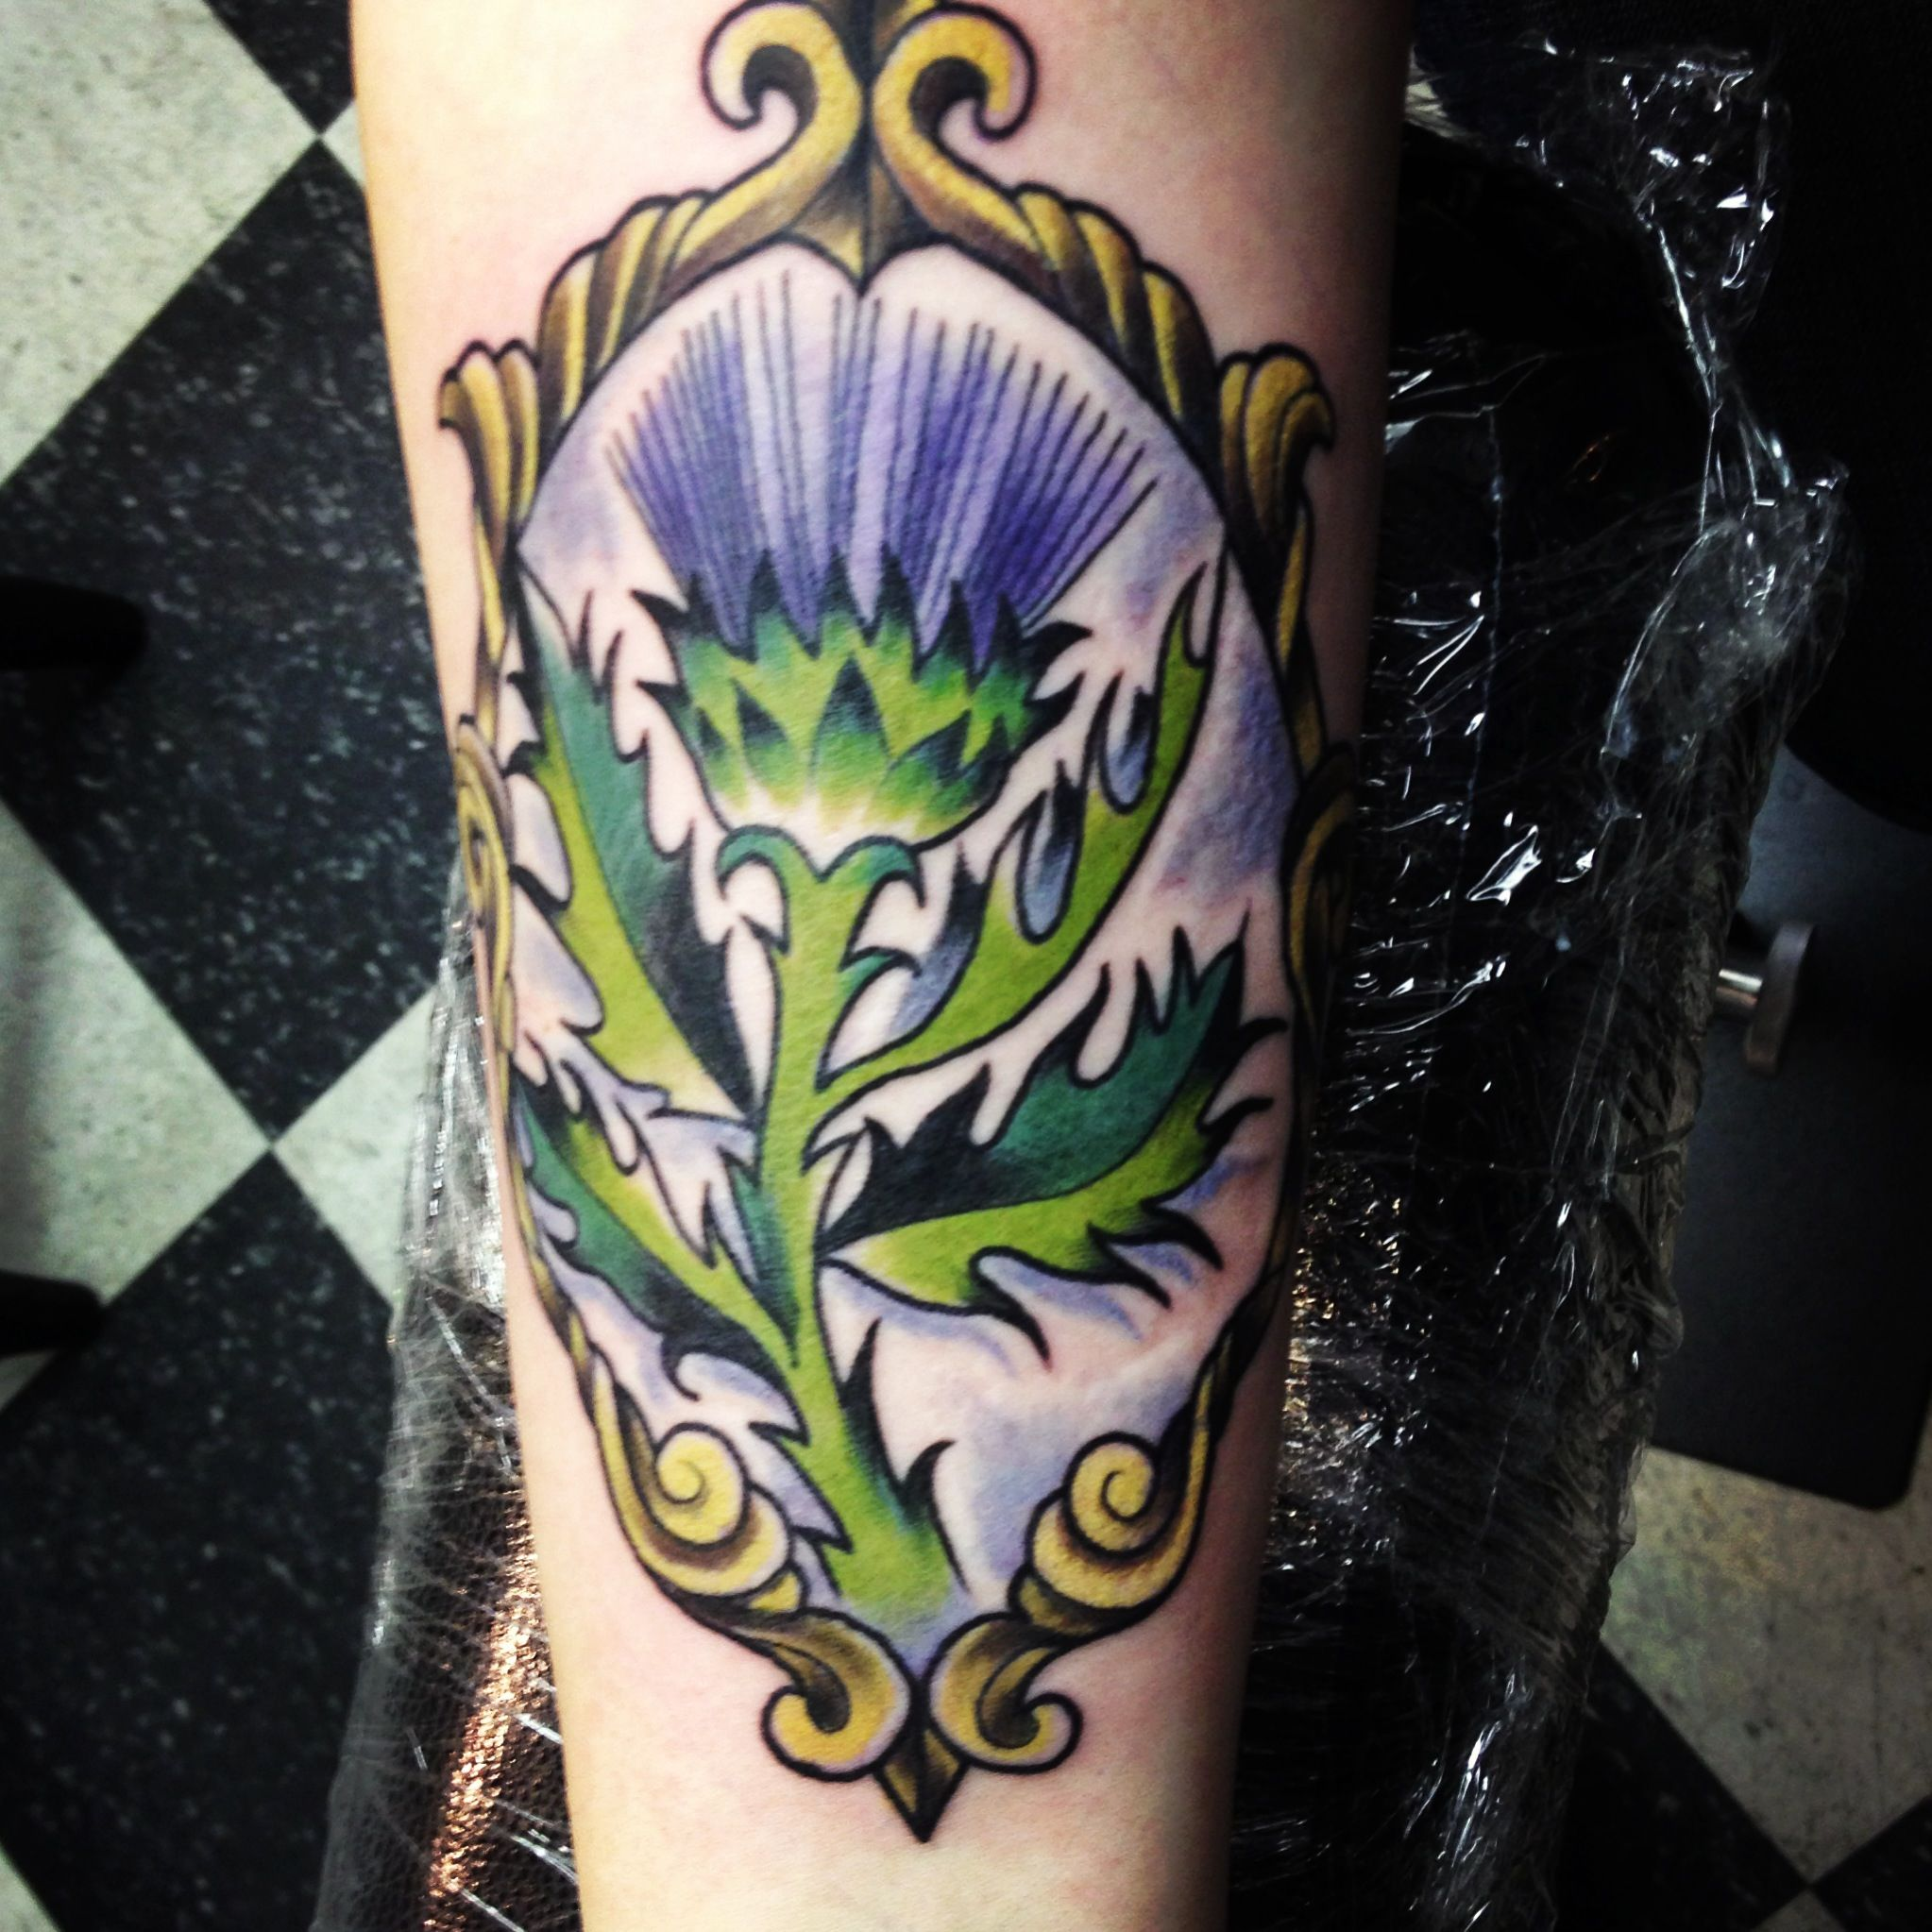 Scottish Thistle Tattoo Ideas: Scotland Tattoo, Thistle